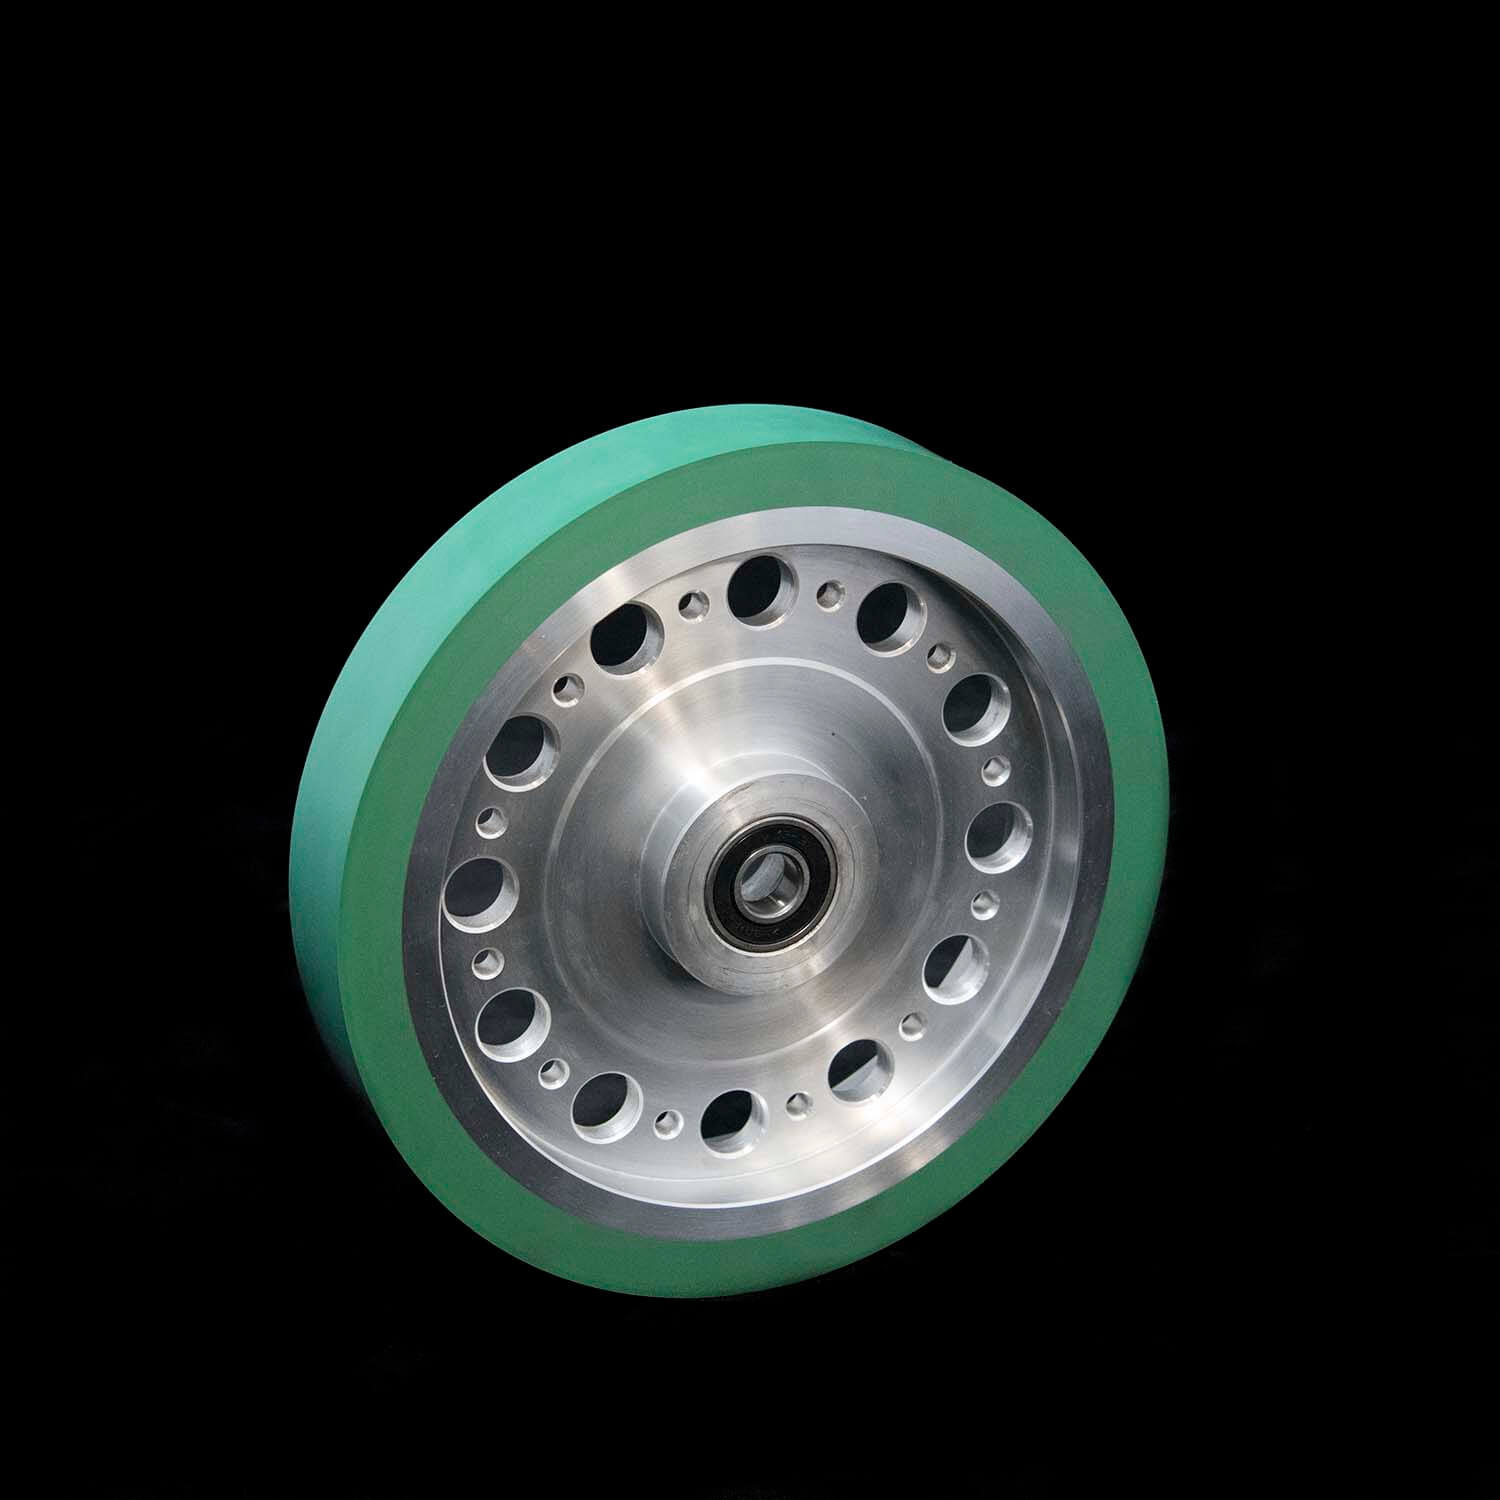 290mm_contact_wheel_for_knife_making_80